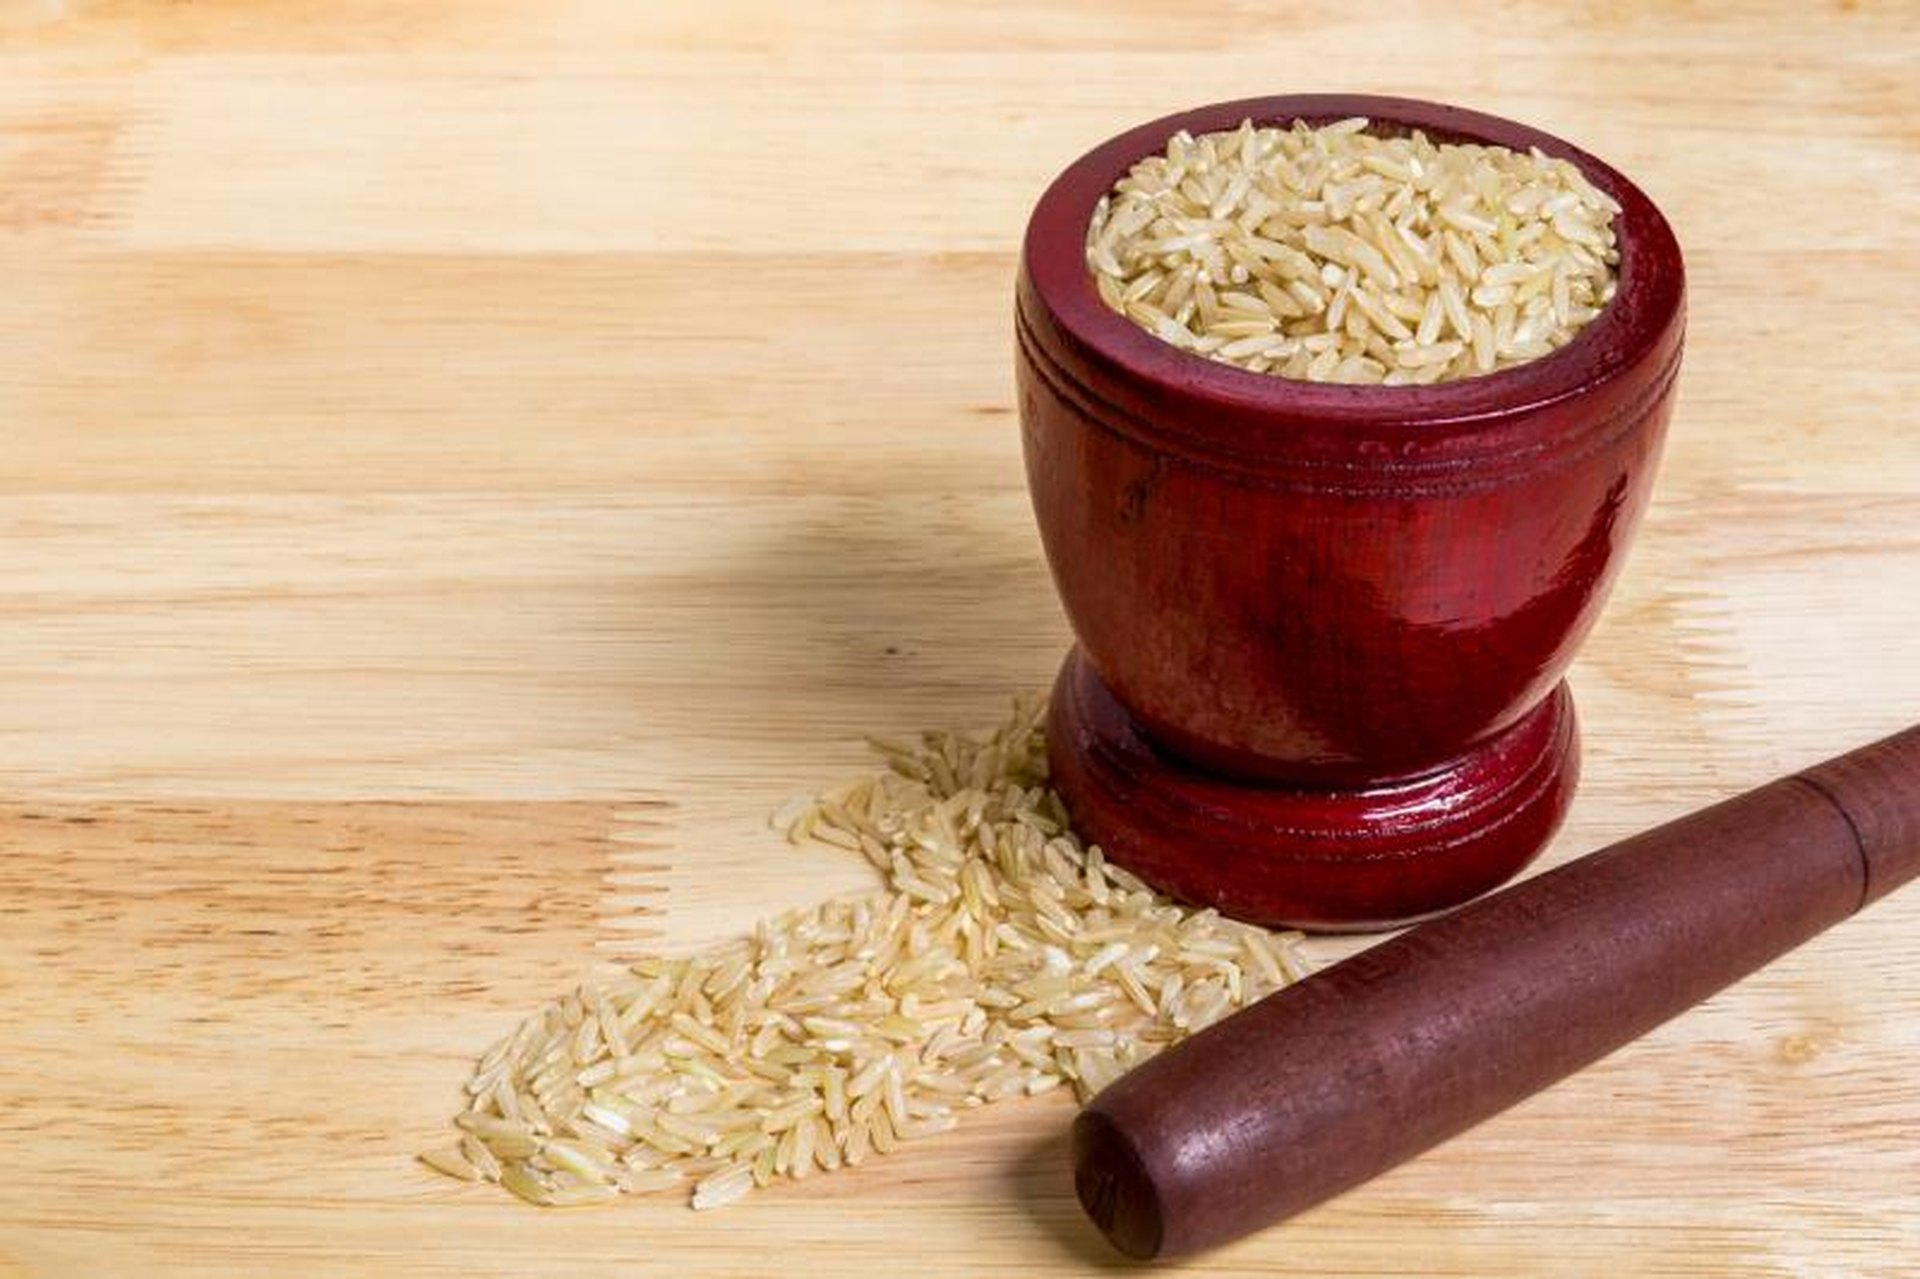 Brown rice: the benefits and harm. Cooking Brown Rice 45